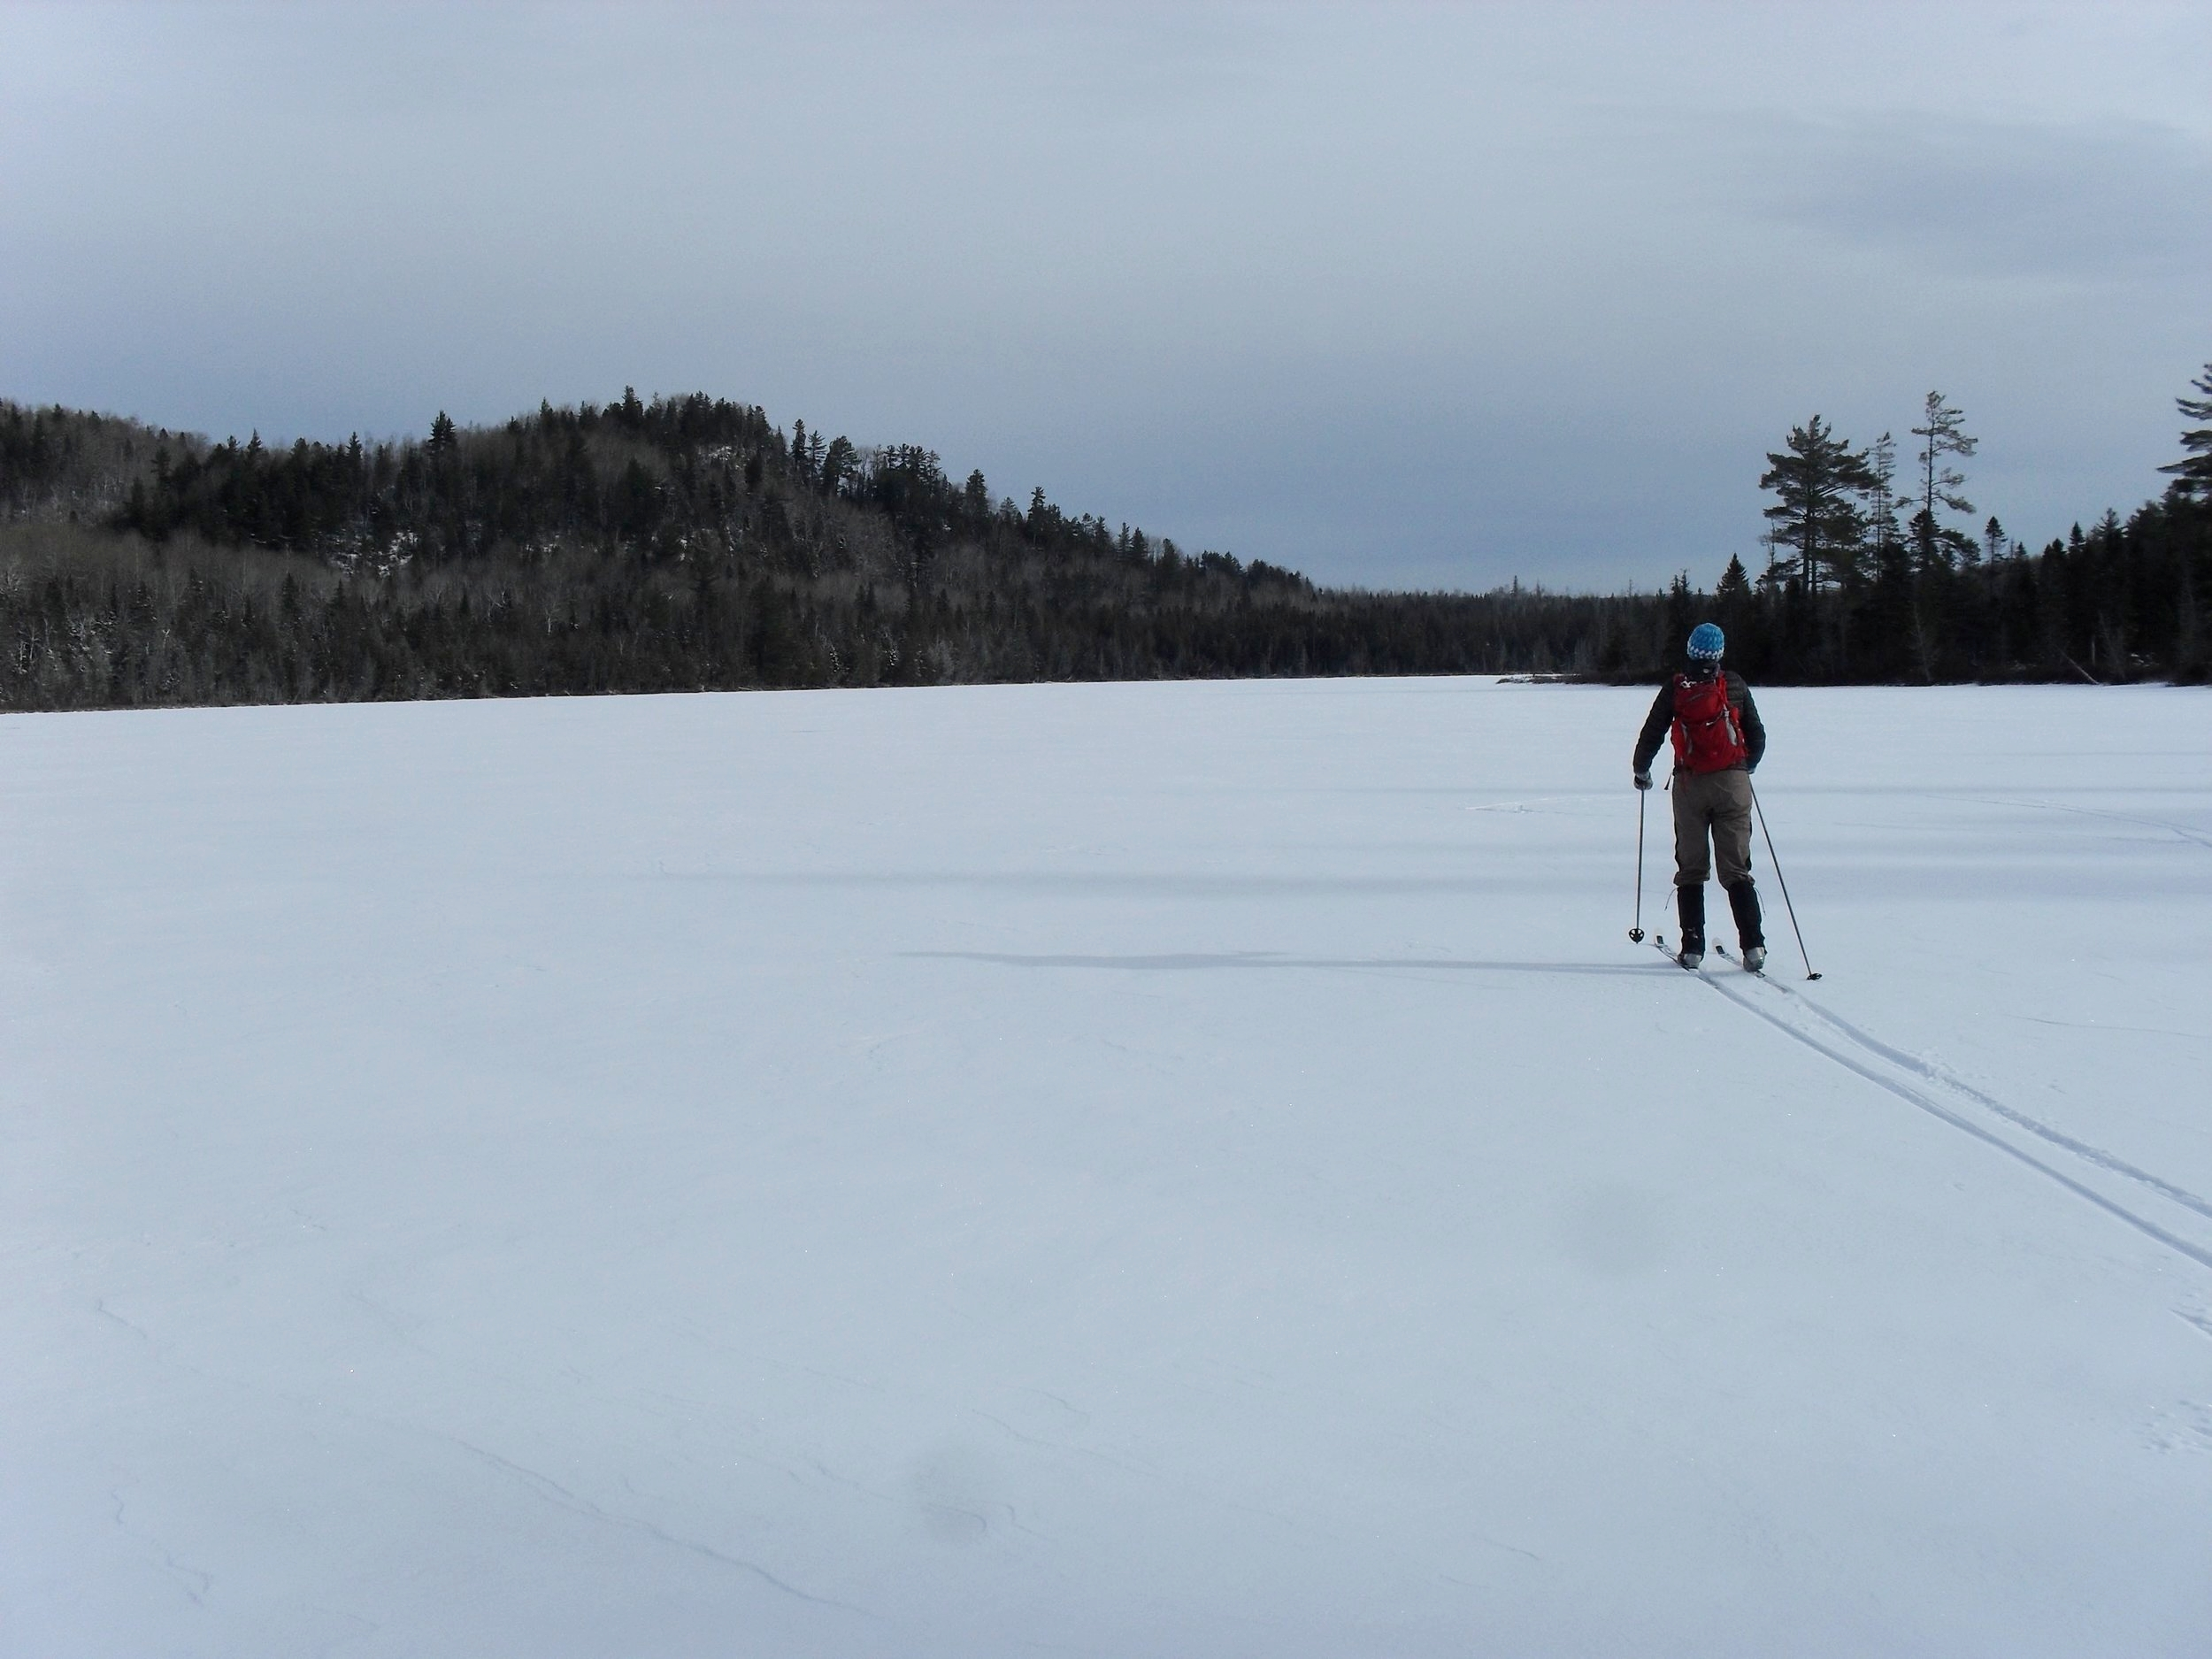 Sure, there are plenty of trails for skiing, but there are also pristine, undeveloped ponds.